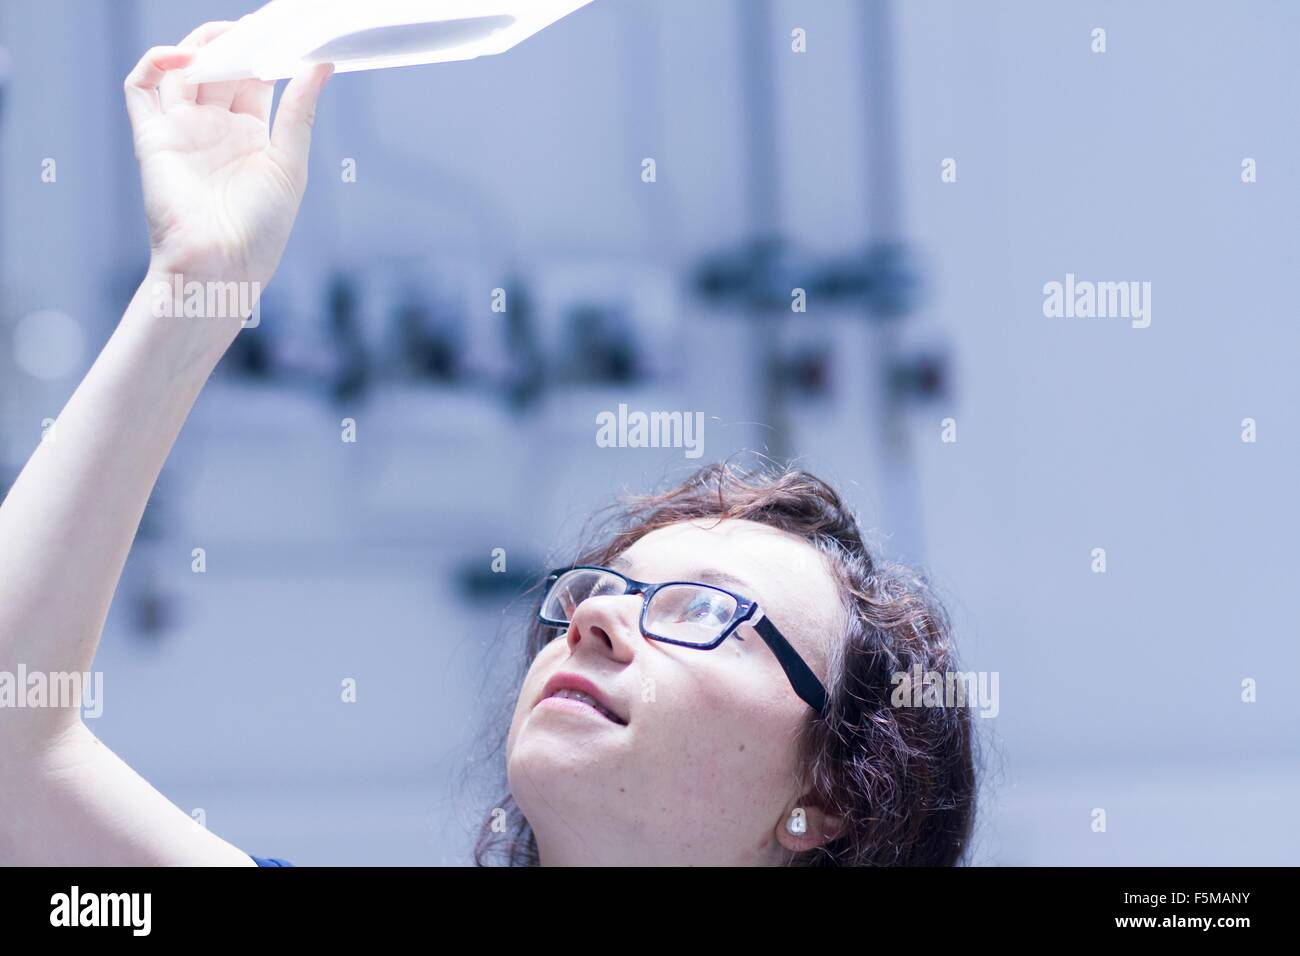 Technician working in laboratory - Stock Image